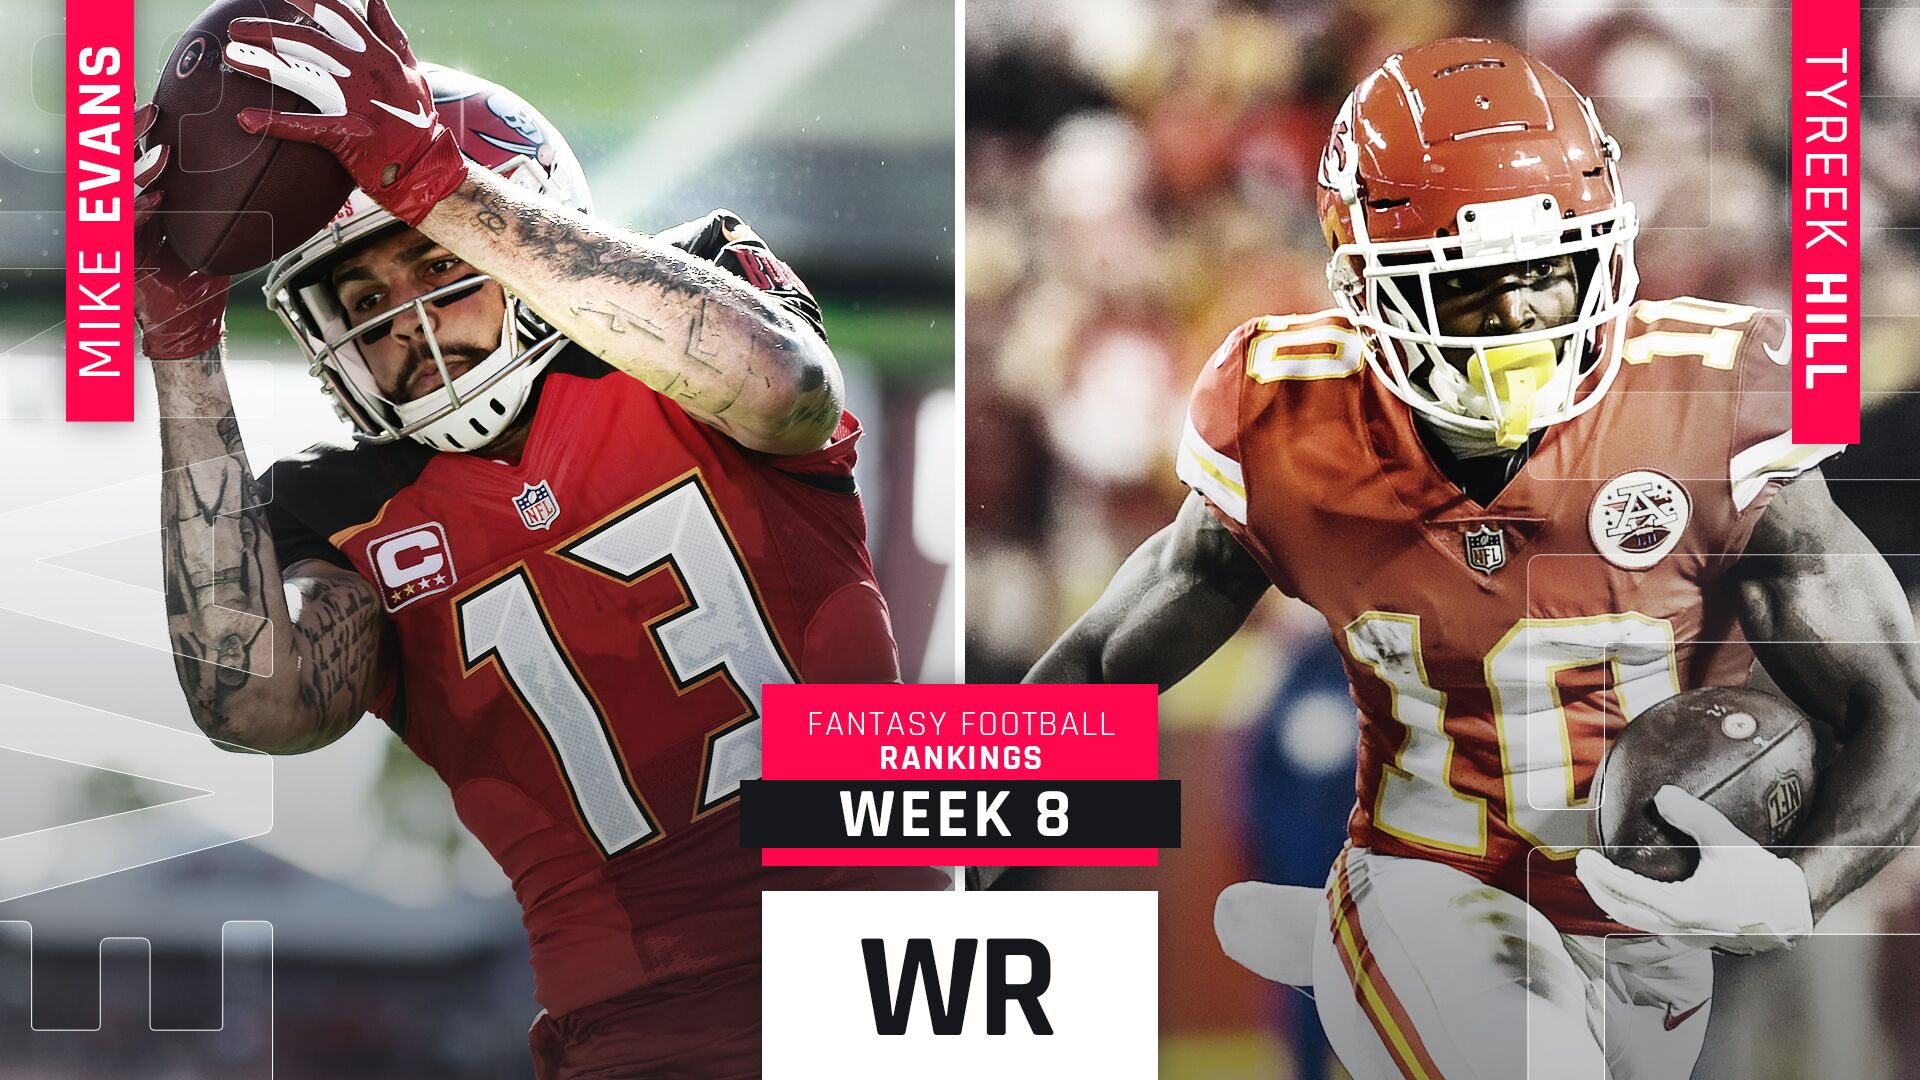 Week 8 Fantasy WR Rankings: Tyreek Hill, Julio Jones remain high despite injured QBs